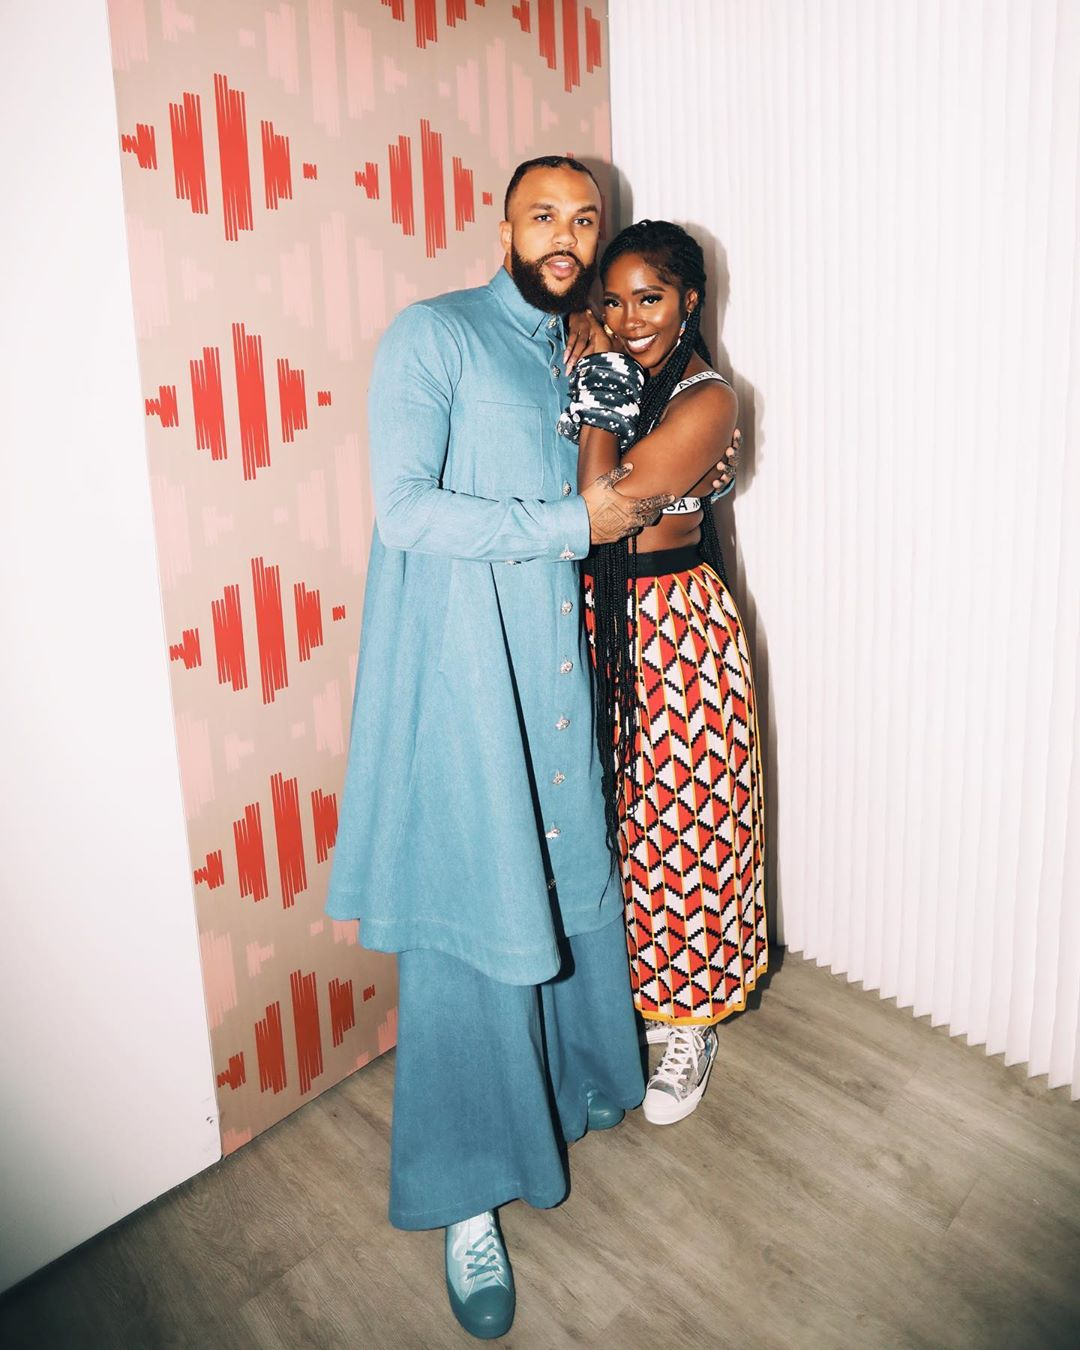 Tiwa Savage & Jidenna came through for Carmelo Anthony at Melo Made Showcase